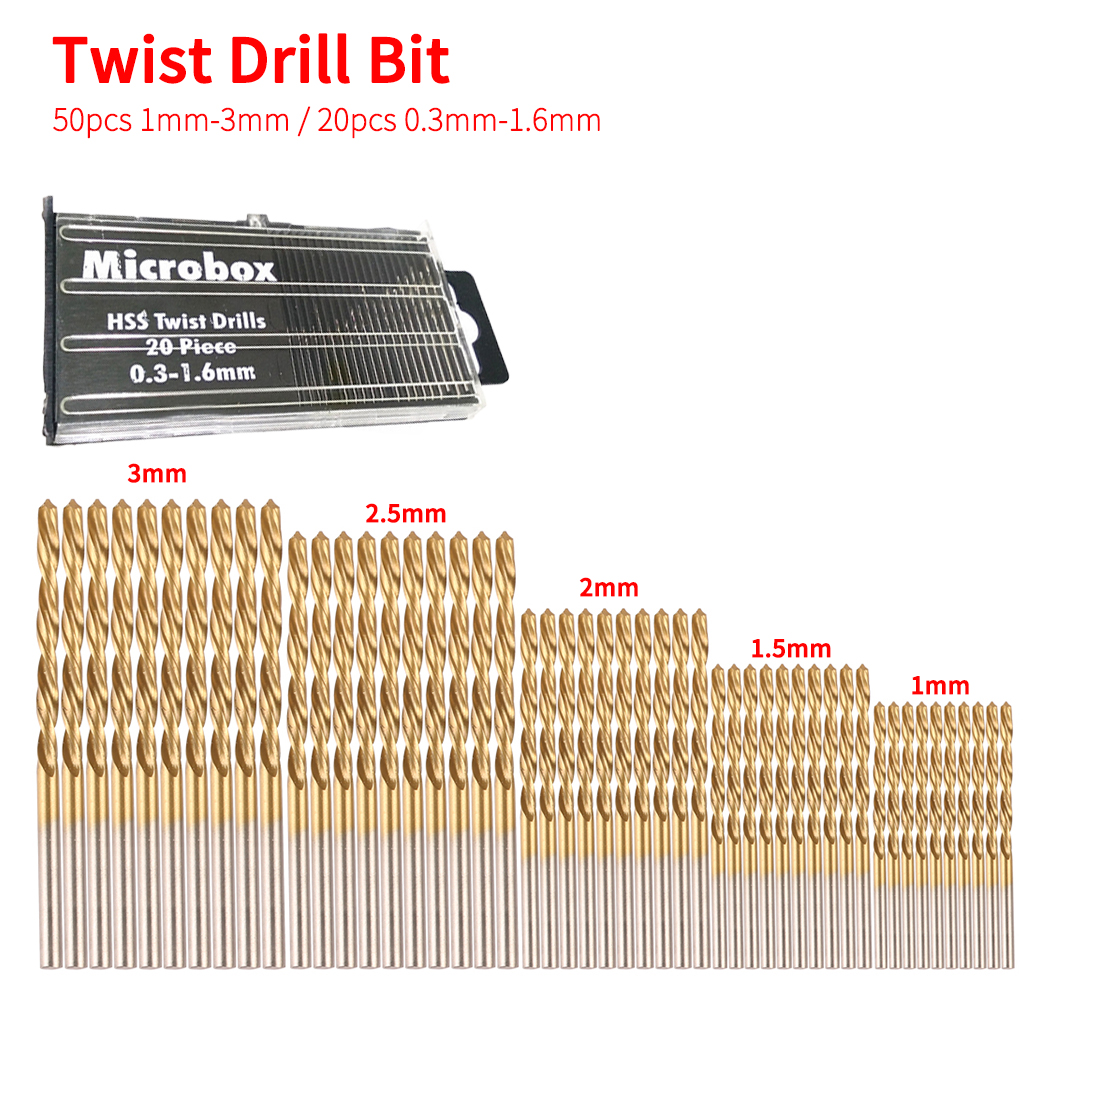 Twist Drill Bit 50pcs 1/1.5/2/2.5/3mm Titanium Coated HSS Twist Drill Bit Set Tool Woodworking Tools For Plastic Metal Wood